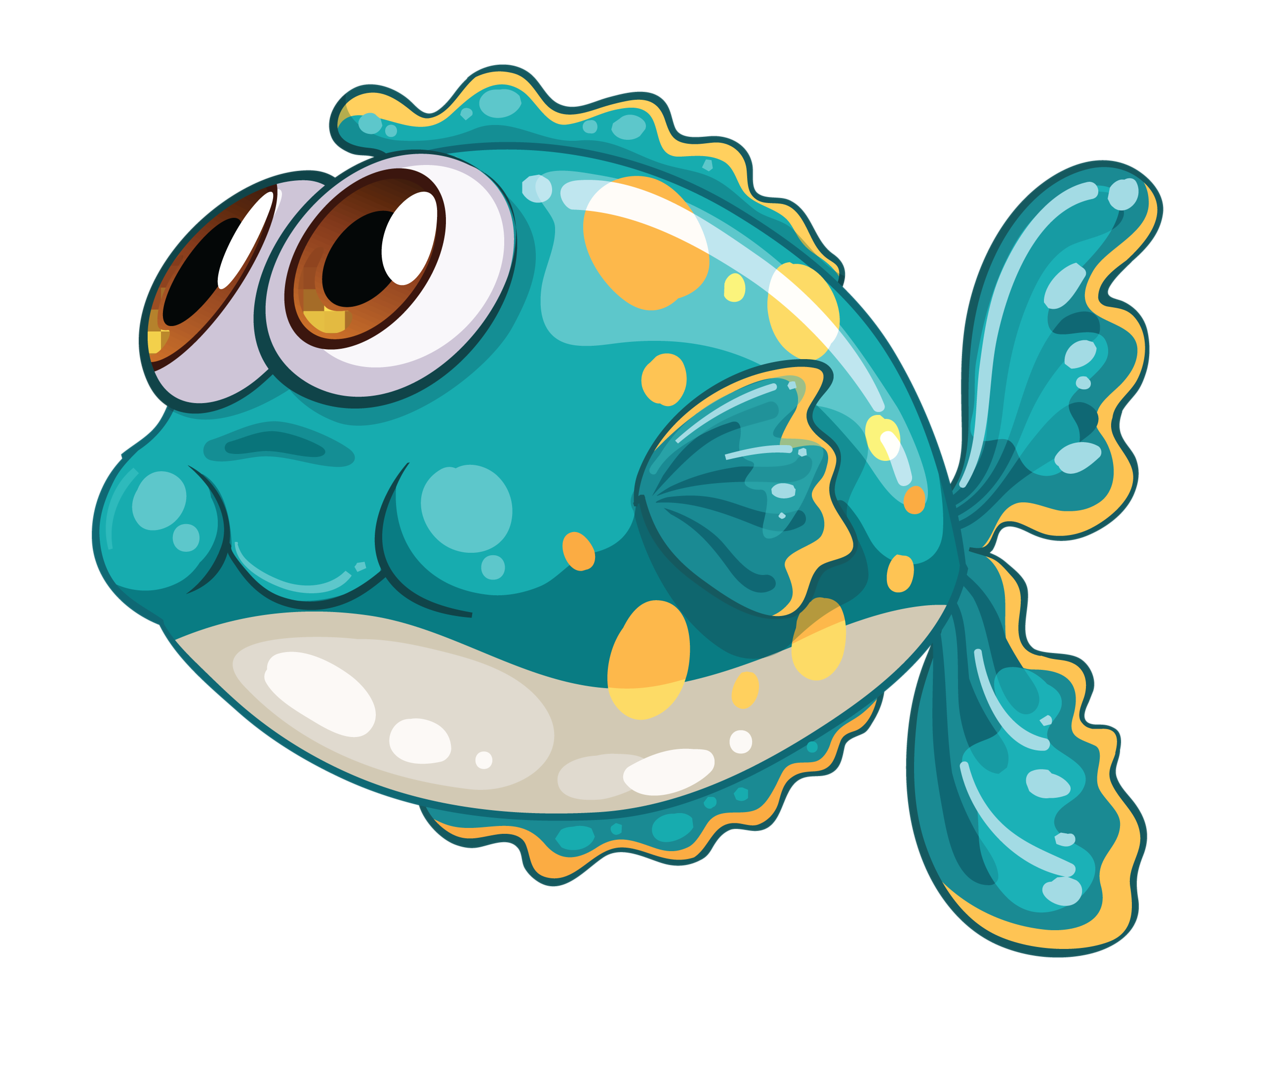 clip art and. Cute fish clipart png